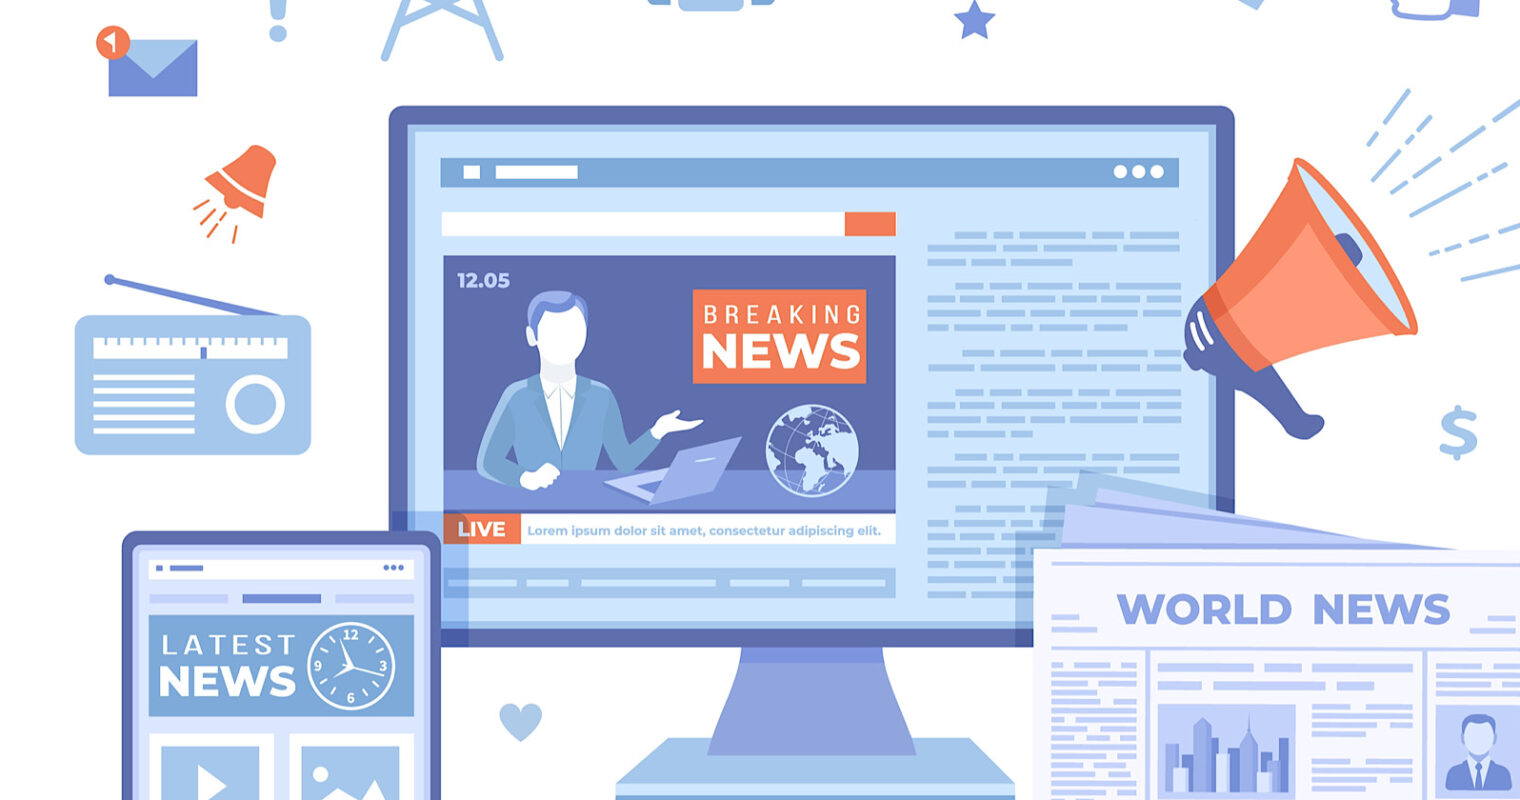 Google on SEO Best Practices for News Sites & Short Articles